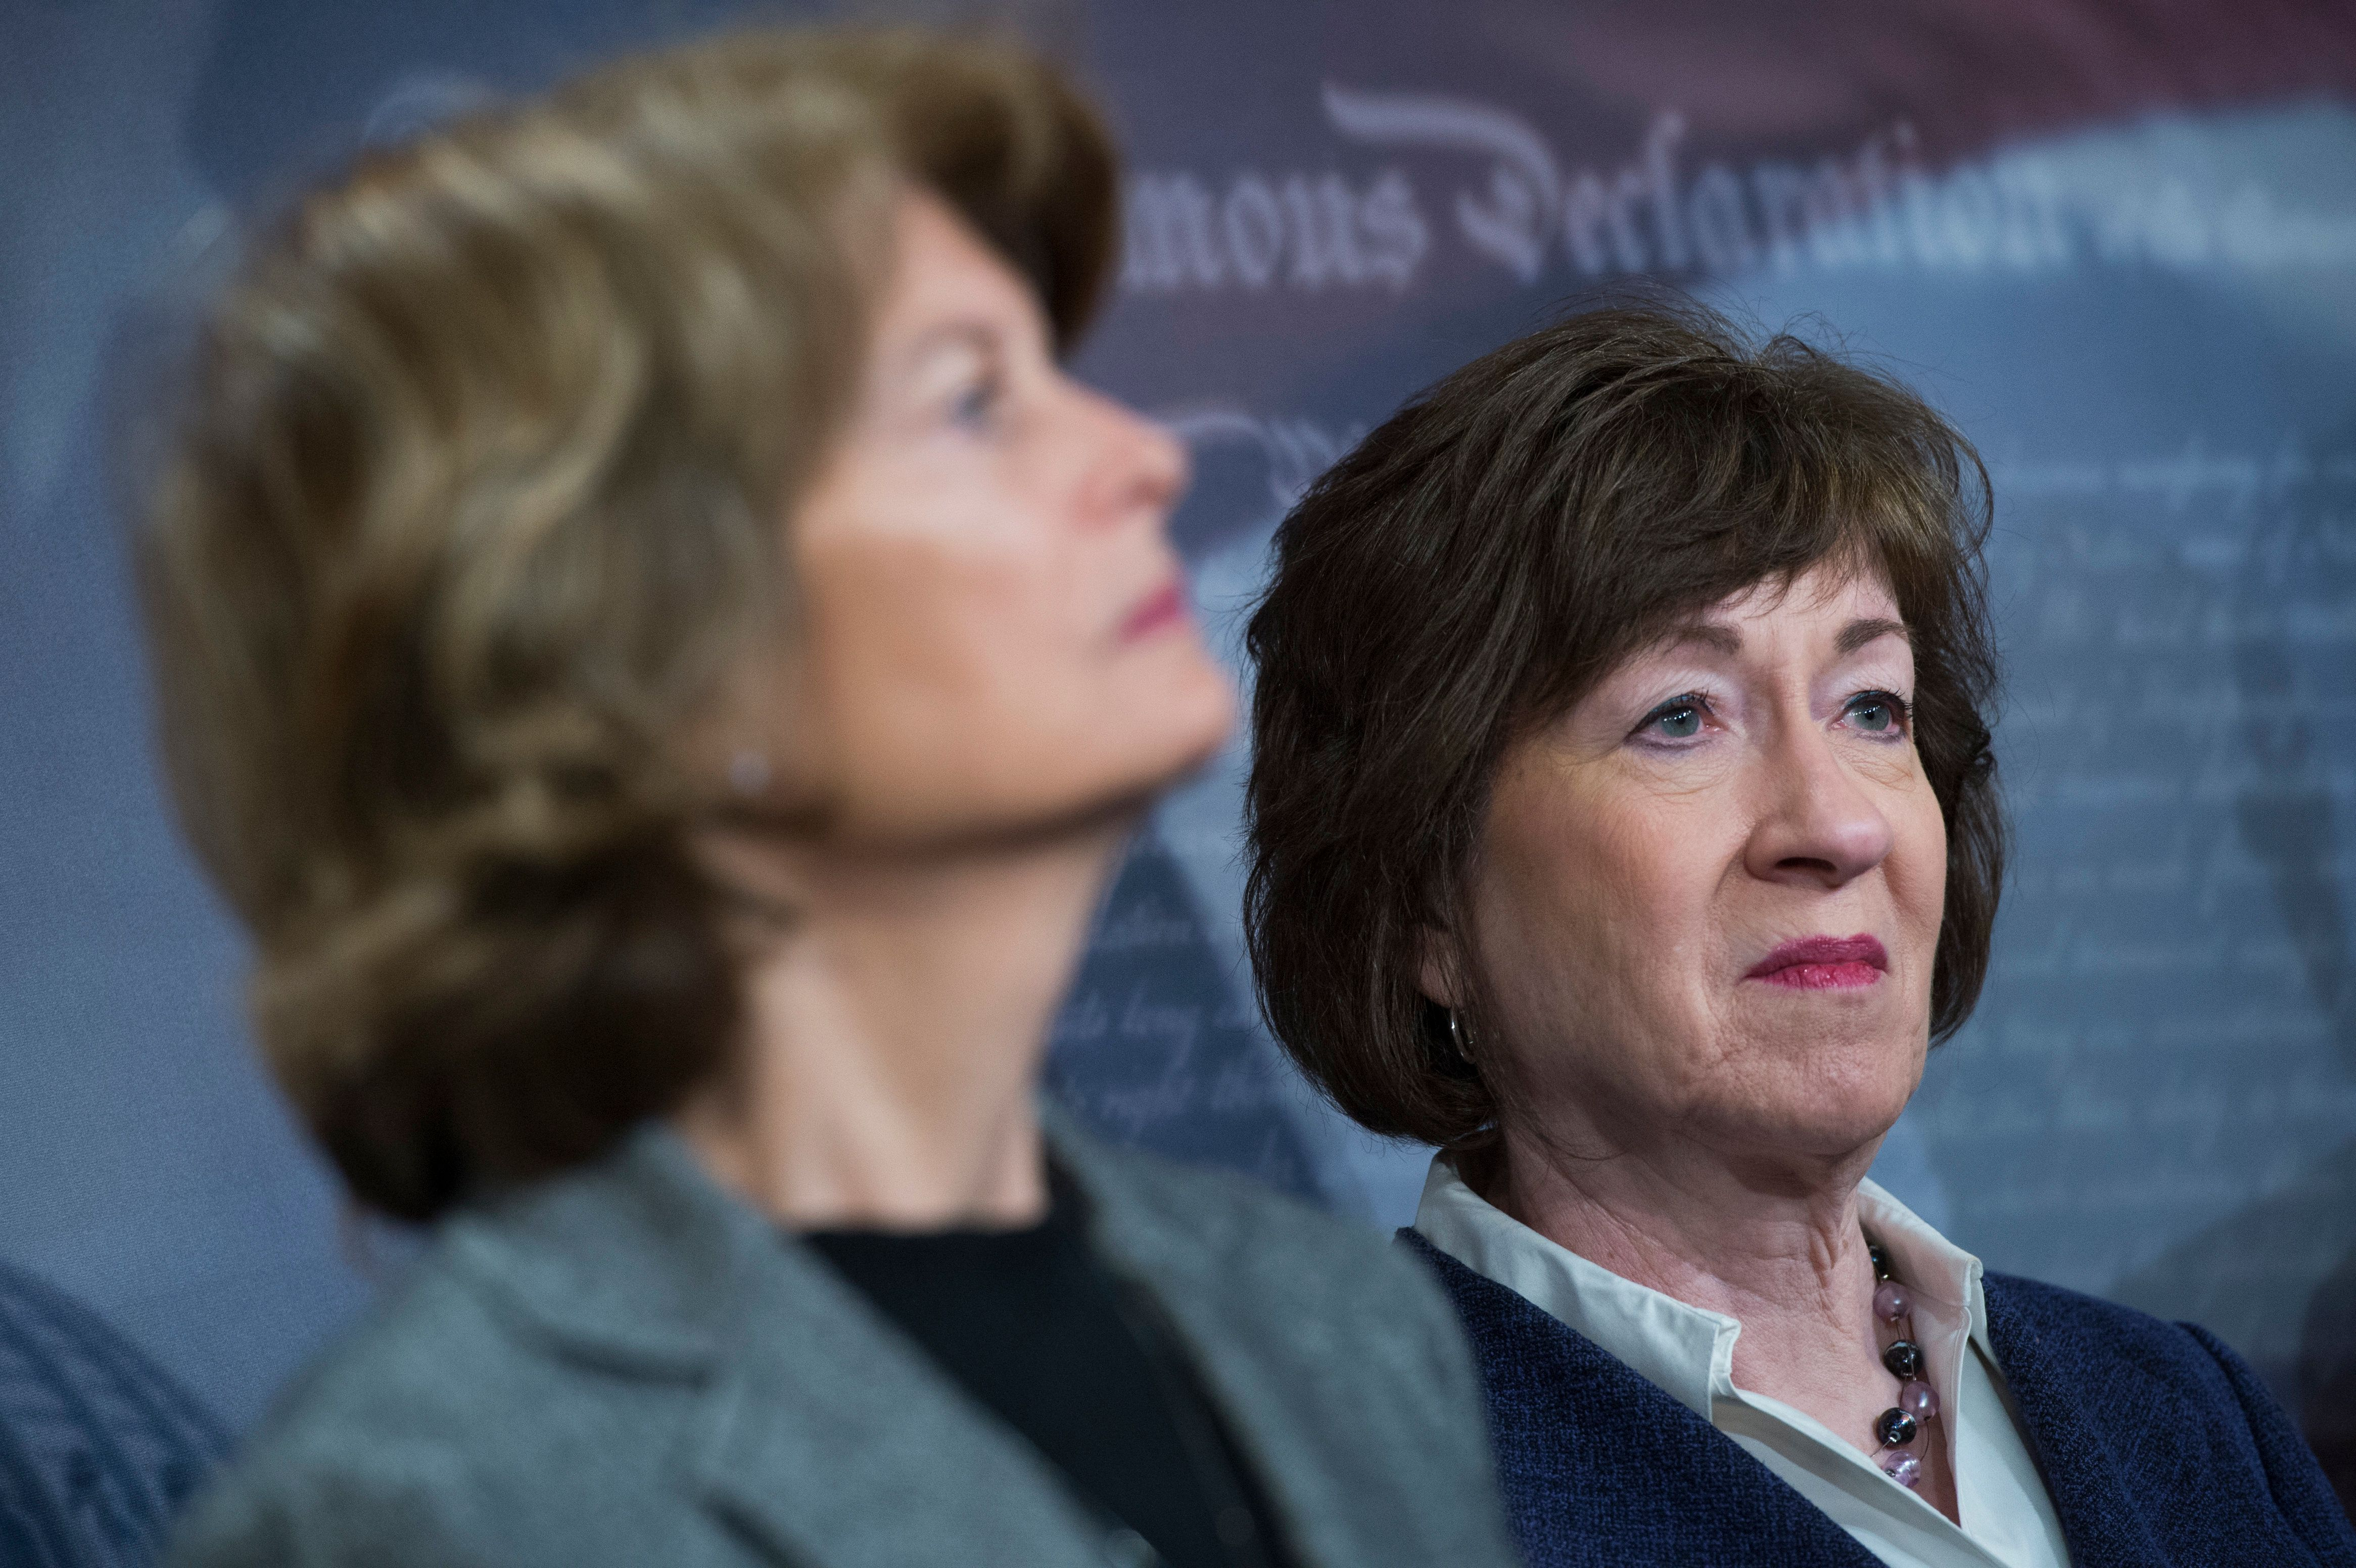 The Pressure Is On For Collins And Murkowski To Protect Roe v. Wade